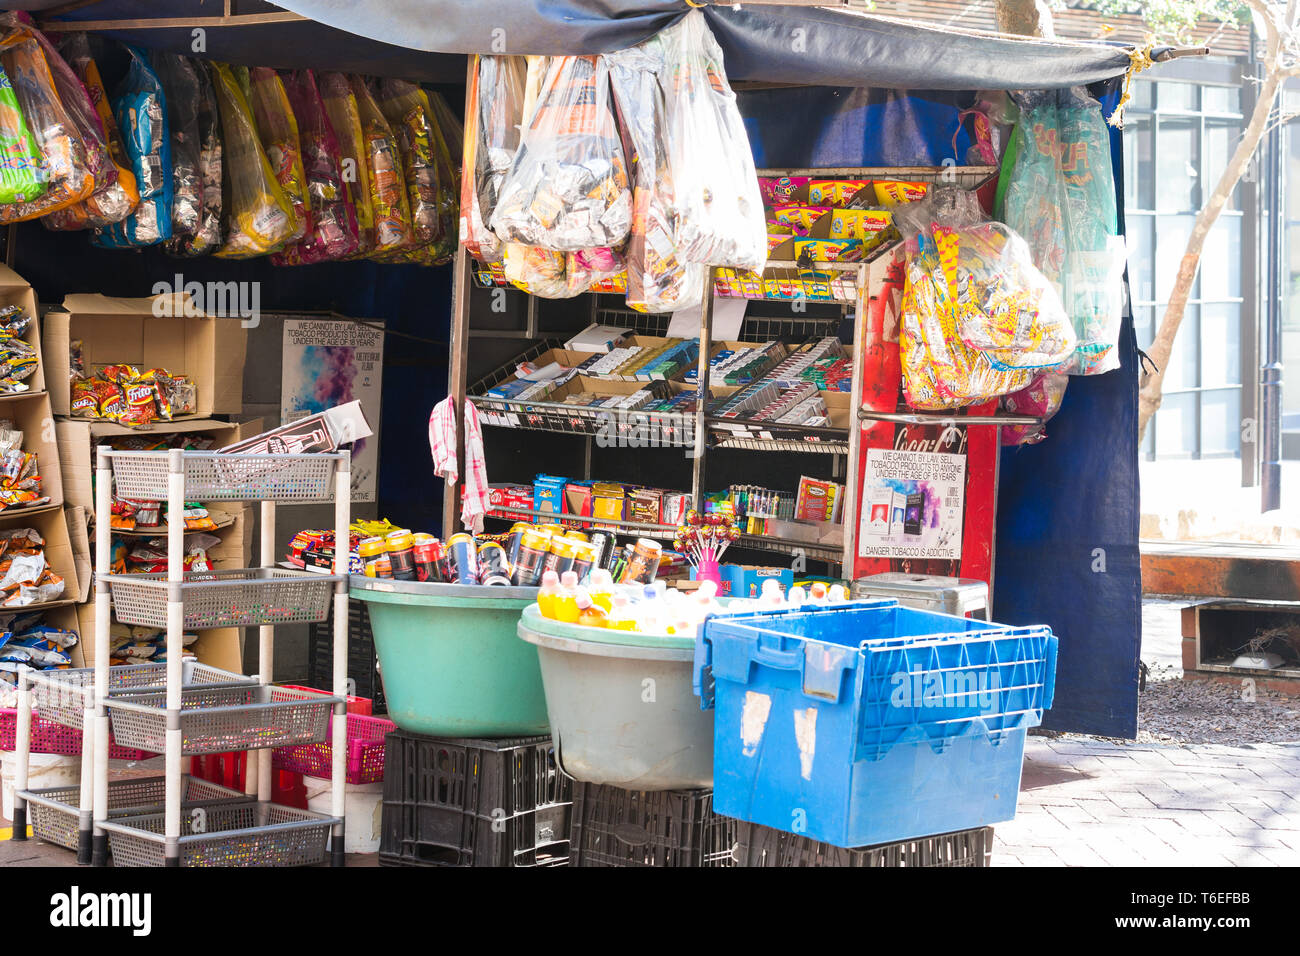 street vendor stall which is very basic in the city centre in Cape Town, South Africa selling refreshments and small items for snacks on the go - Stock Image